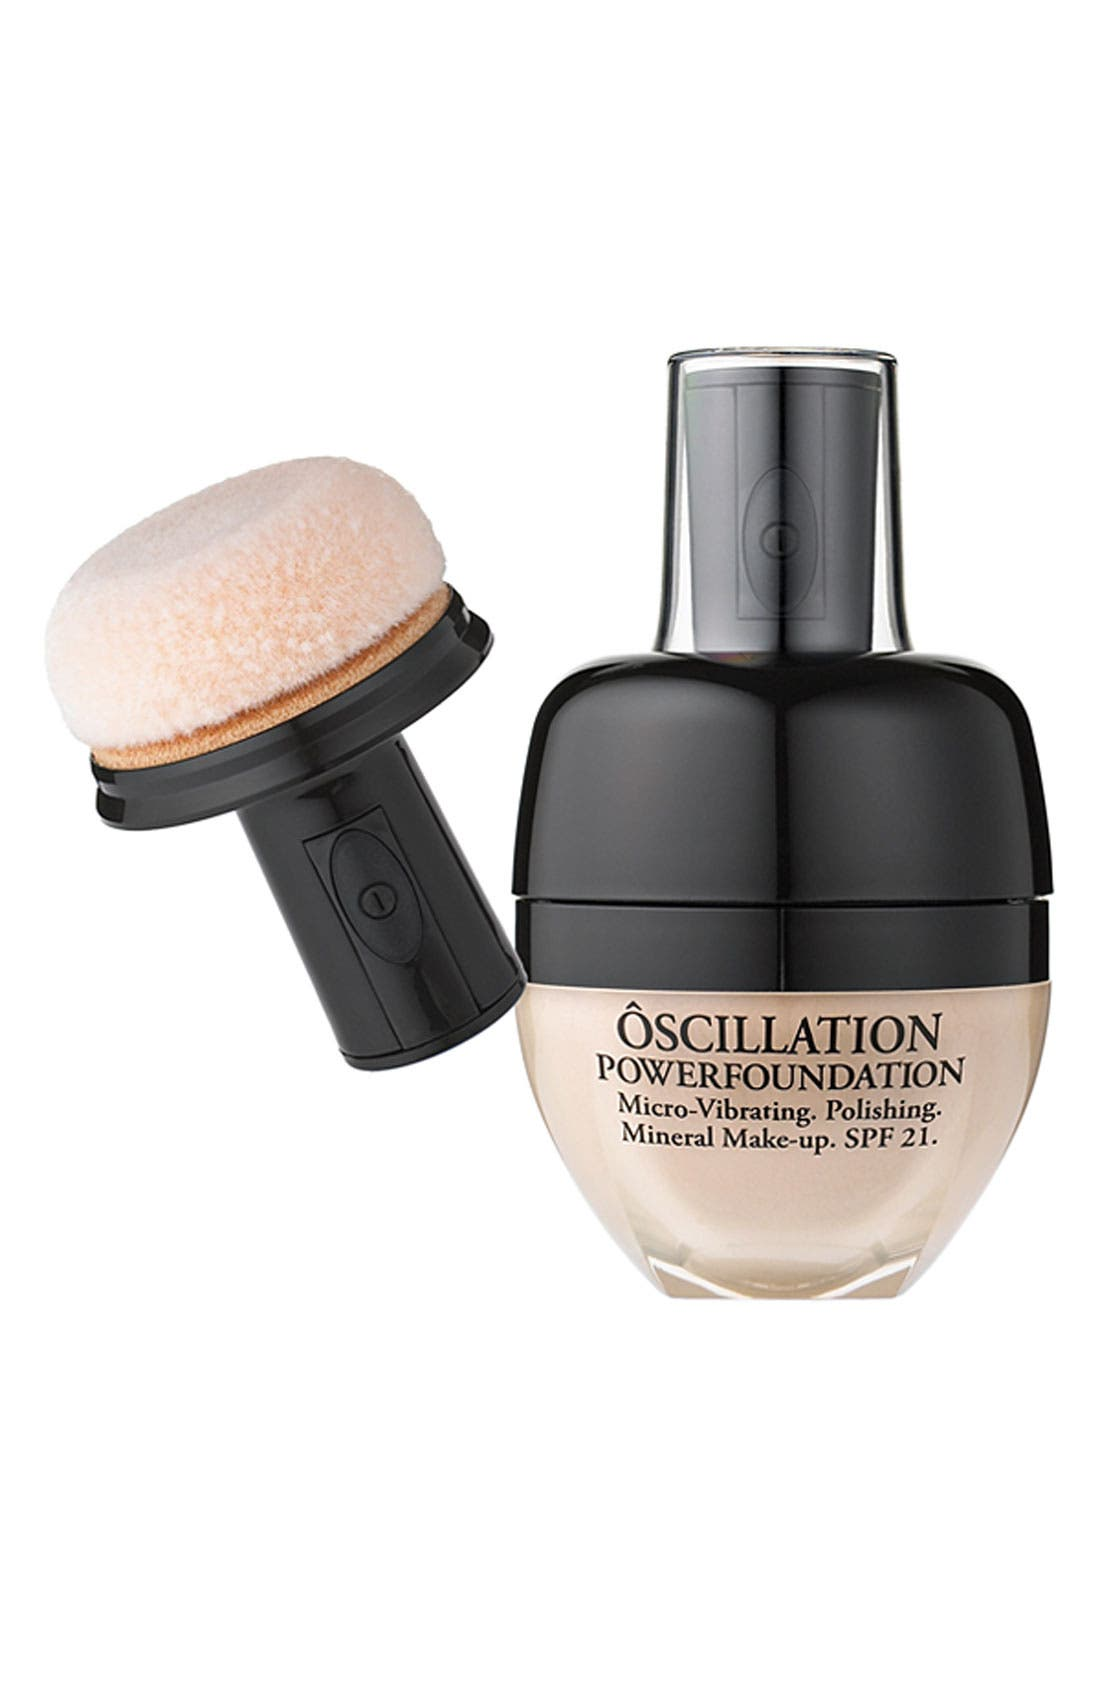 'Ôscillation Powerfoundation' Mineral Makeup SPF 21,                             Main thumbnail 1, color,                             001